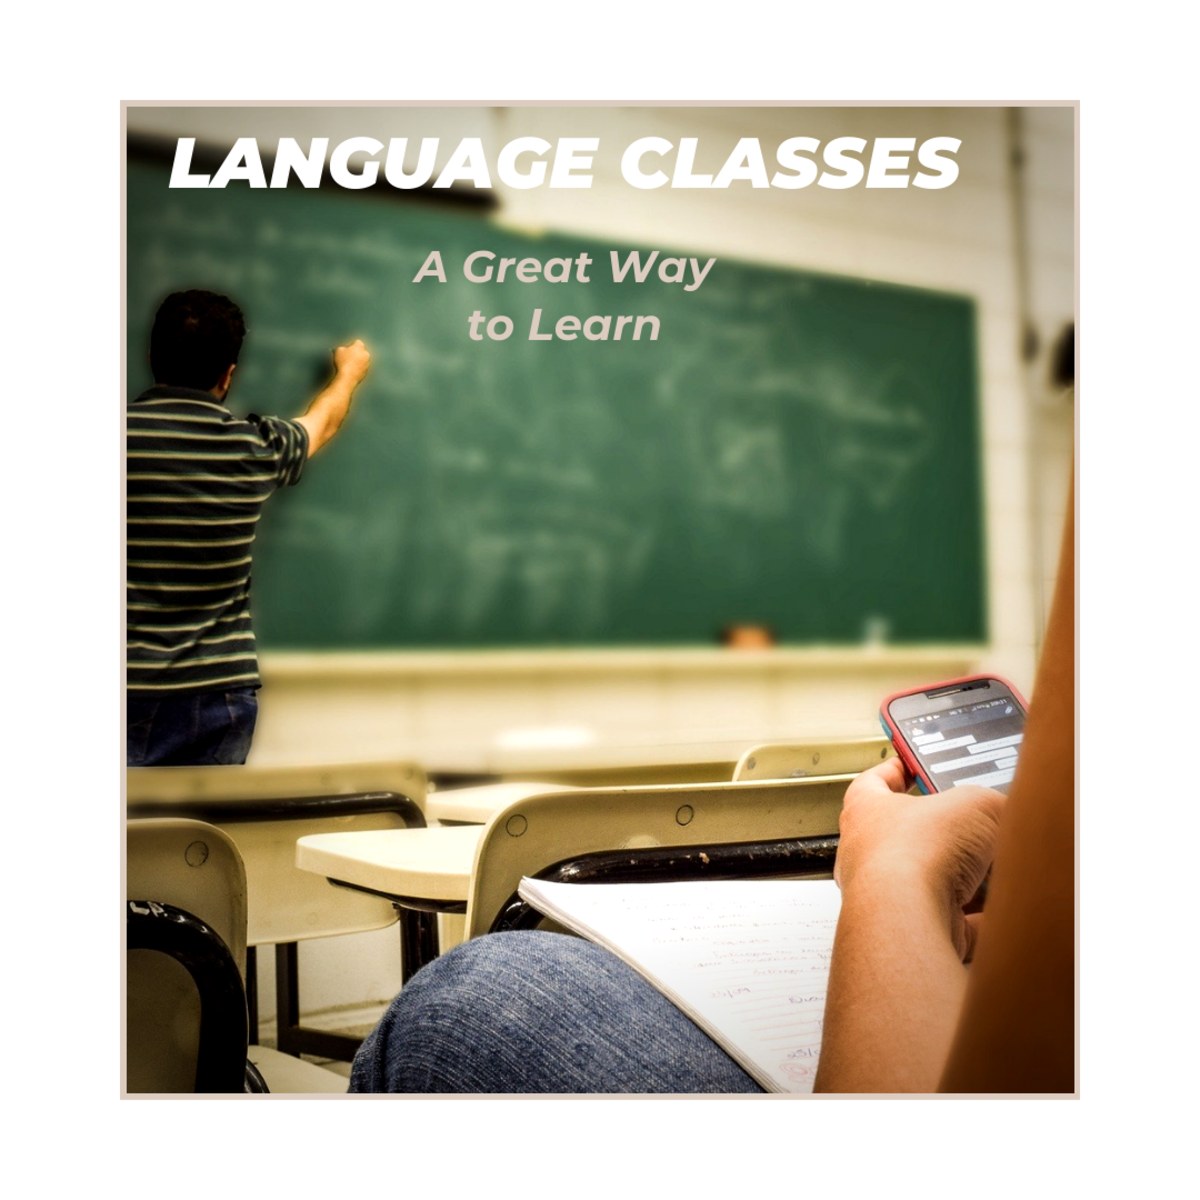 Some people prefer attending a class to learn a new language.